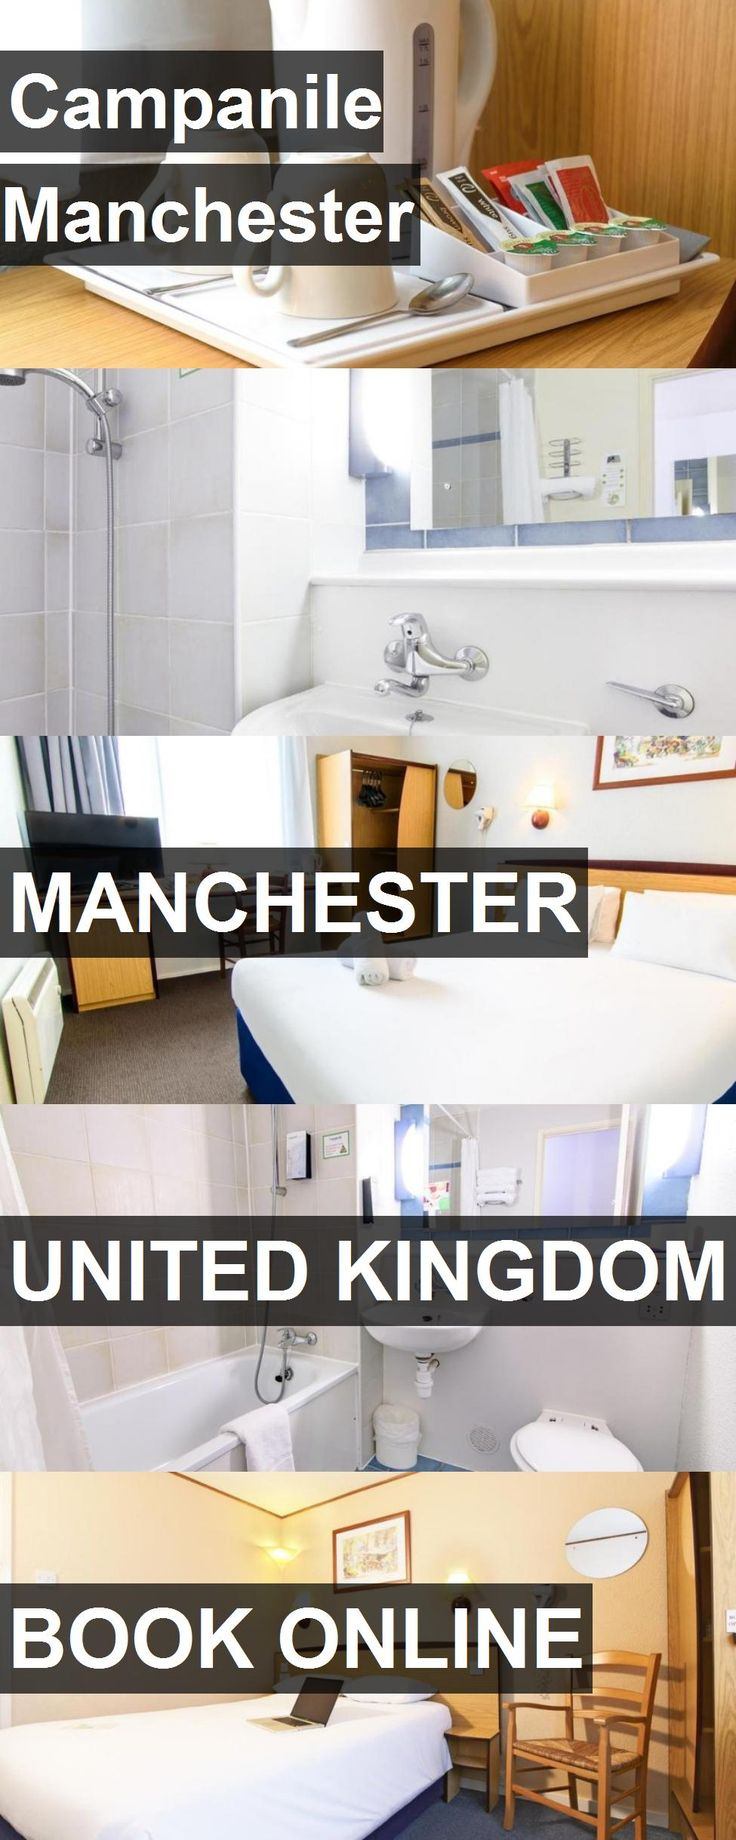 Hotel Campanile Manchester in Manchester, United Kingdom. For more information, photos, reviews and best prices please follow the link. #UnitedKingdom #Manchester #travel #vacation #hotel